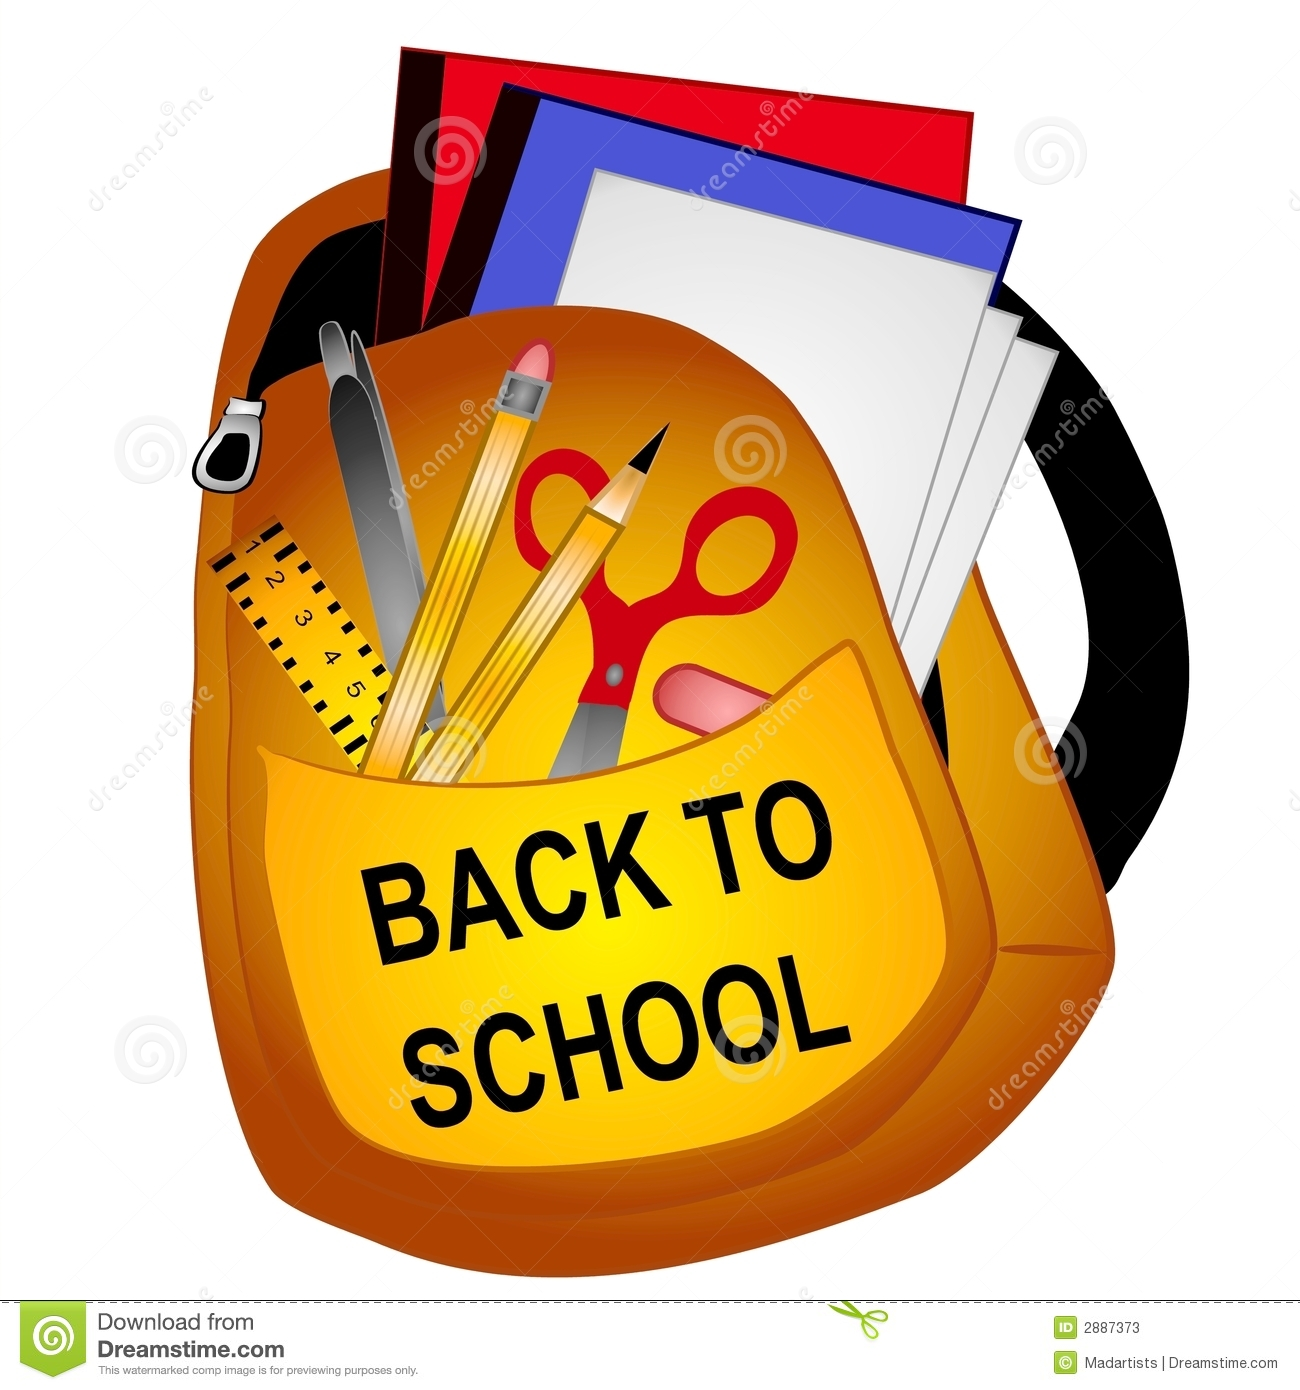 School supplies clip art stock photos image 3 image #1984.